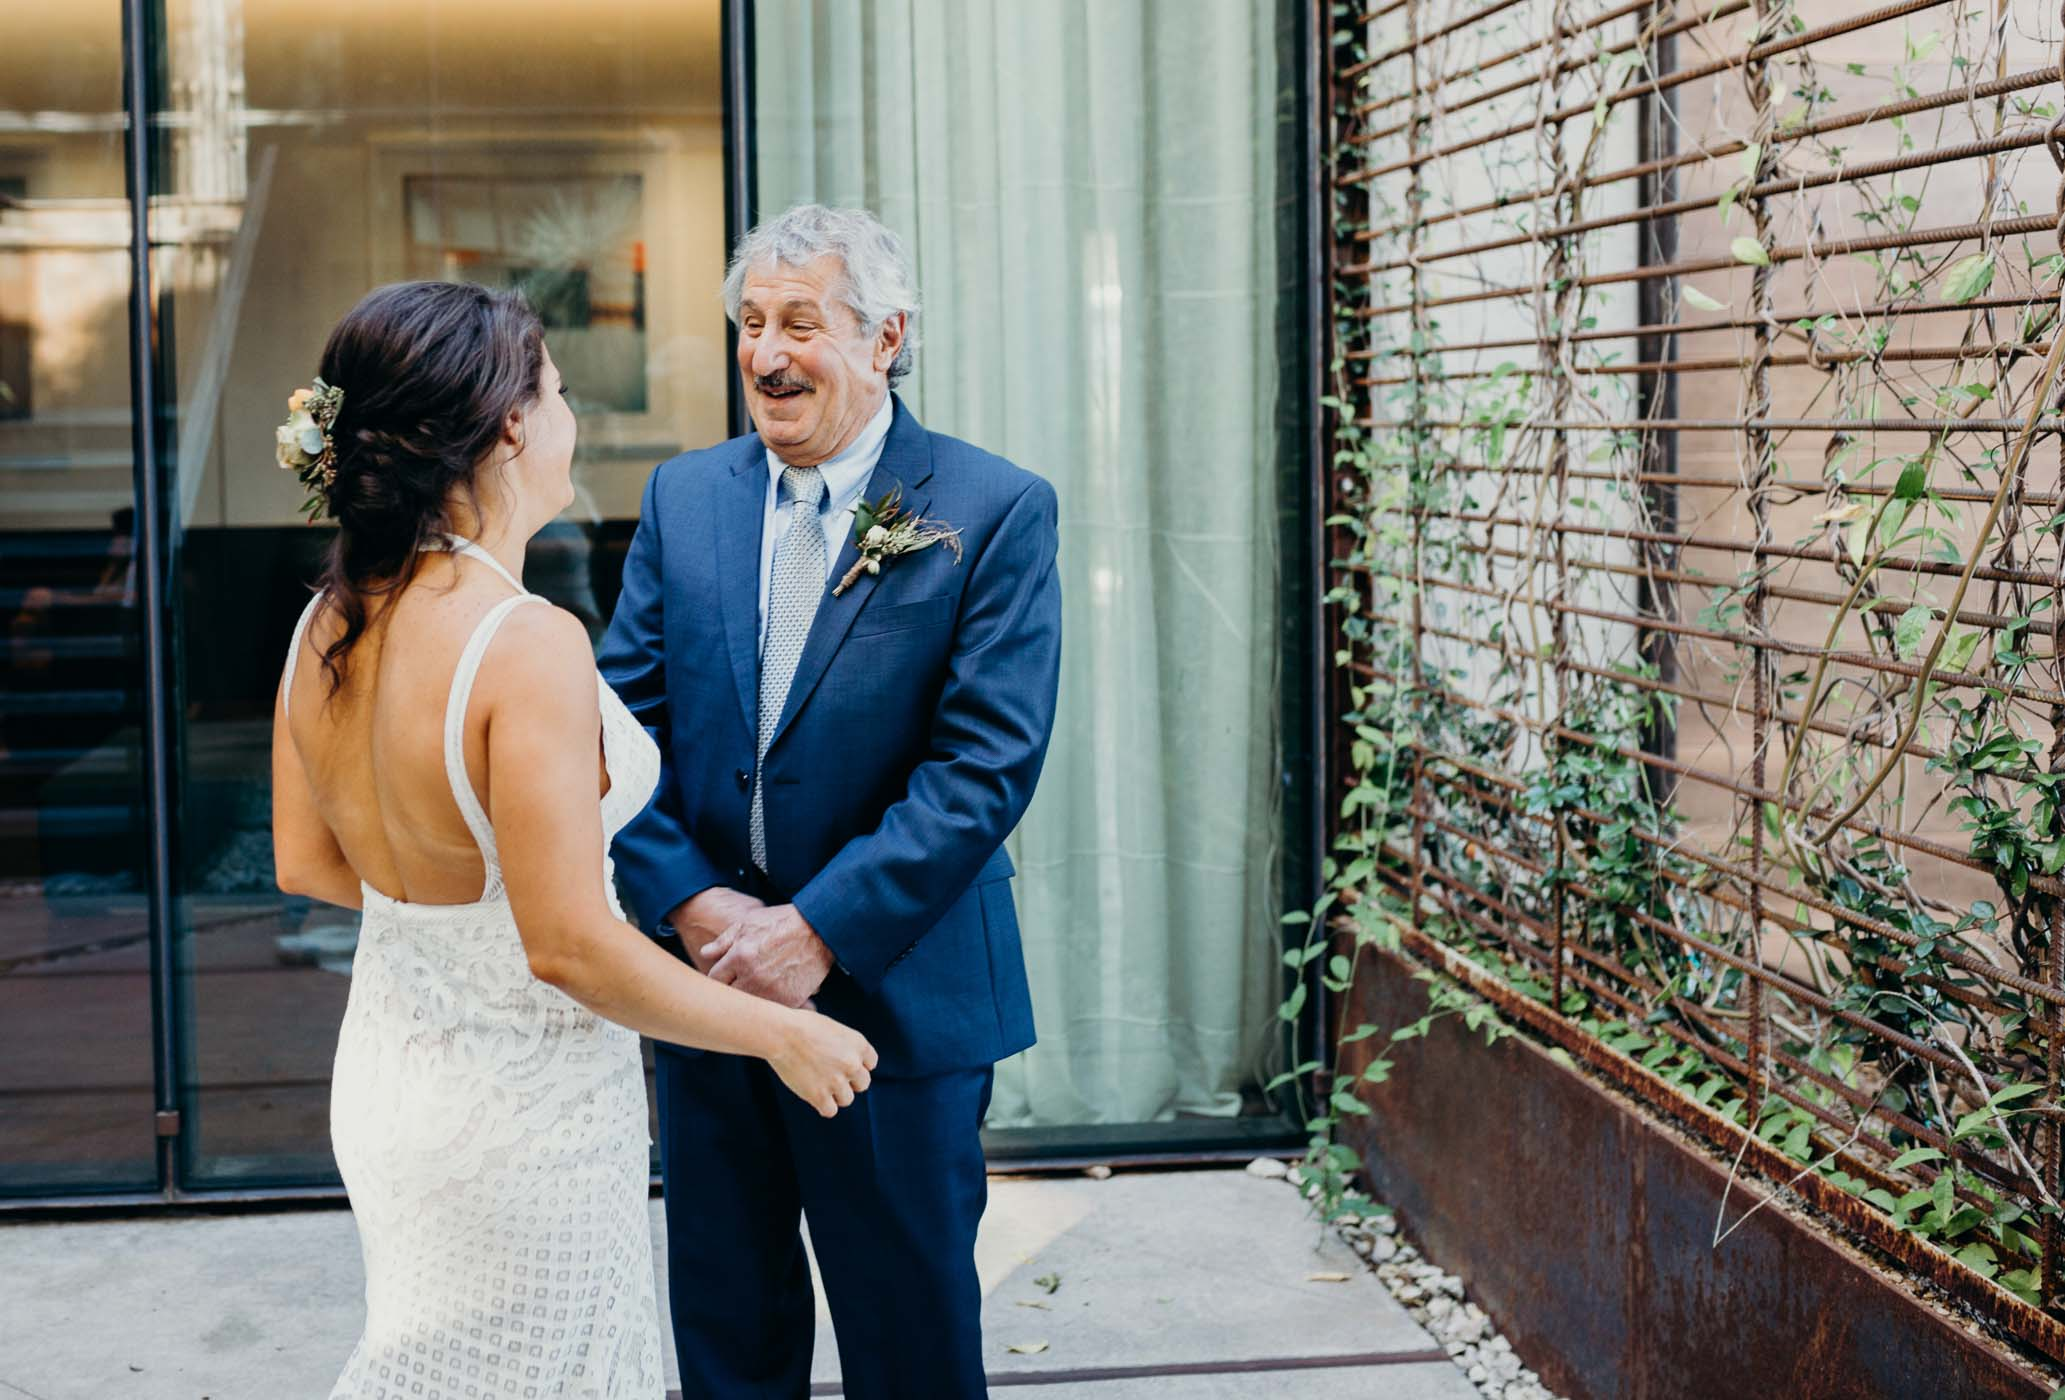 Daughter coming up to her dad on her wedding dad before the fruit look with her husband.